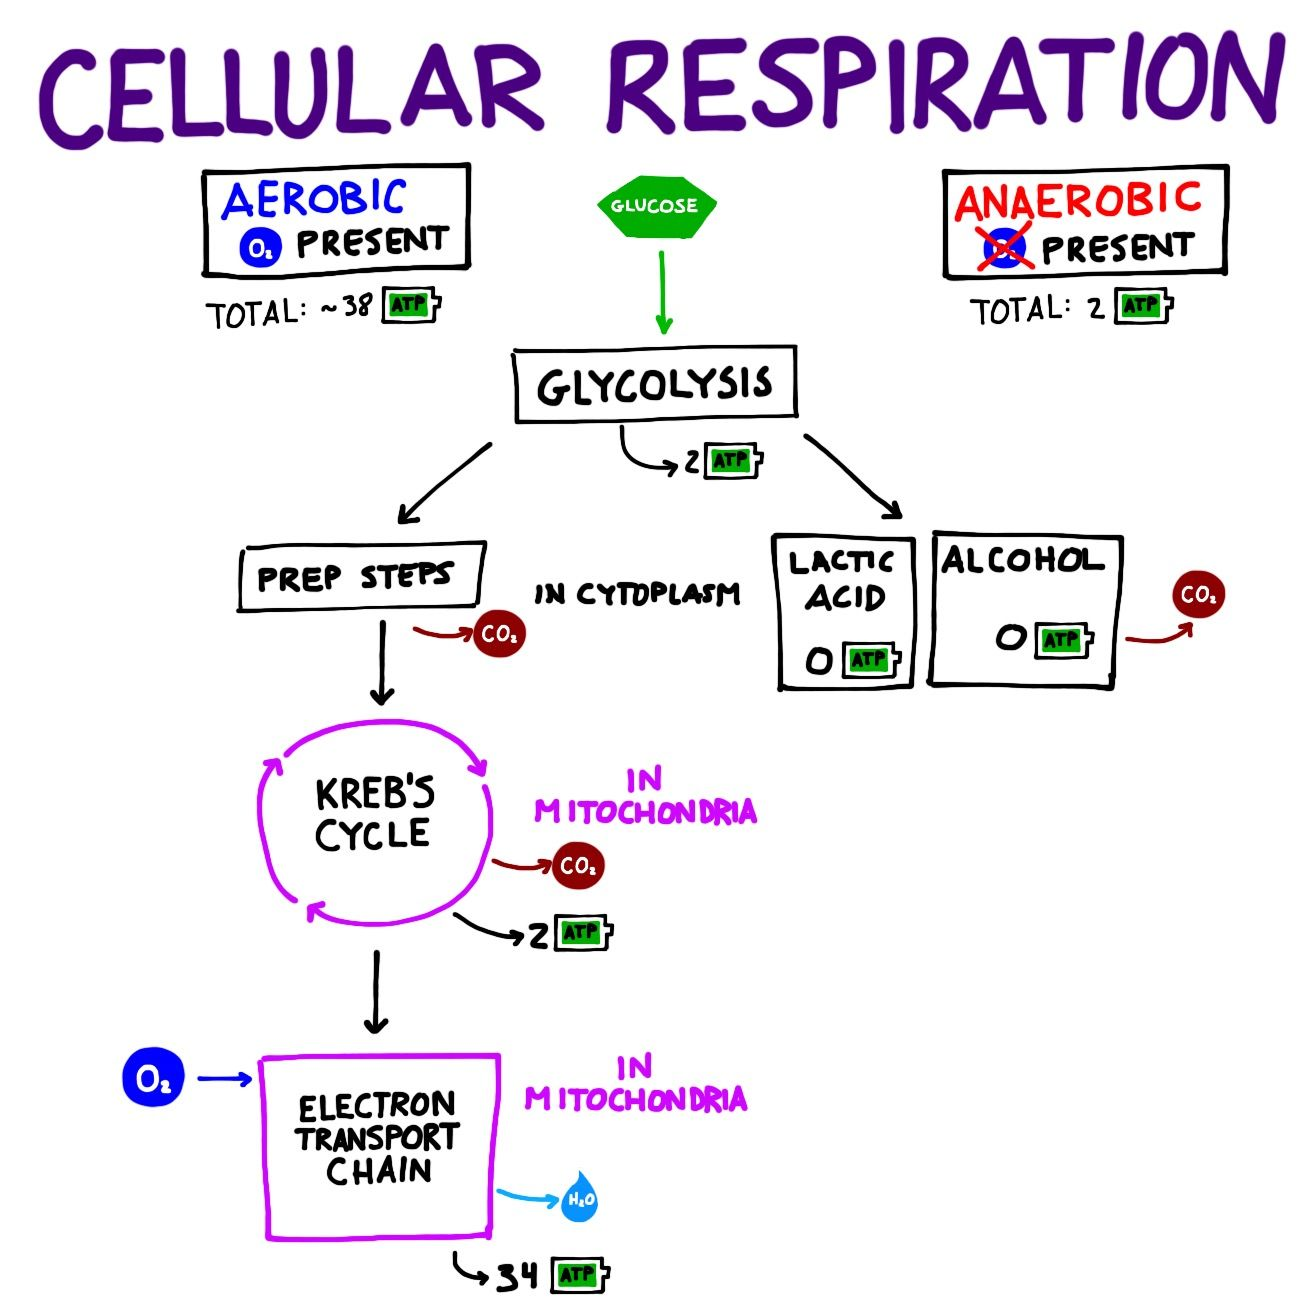 glycolysis cycle diagram cat5e t568a wiring overview of the major steps cellular respiration